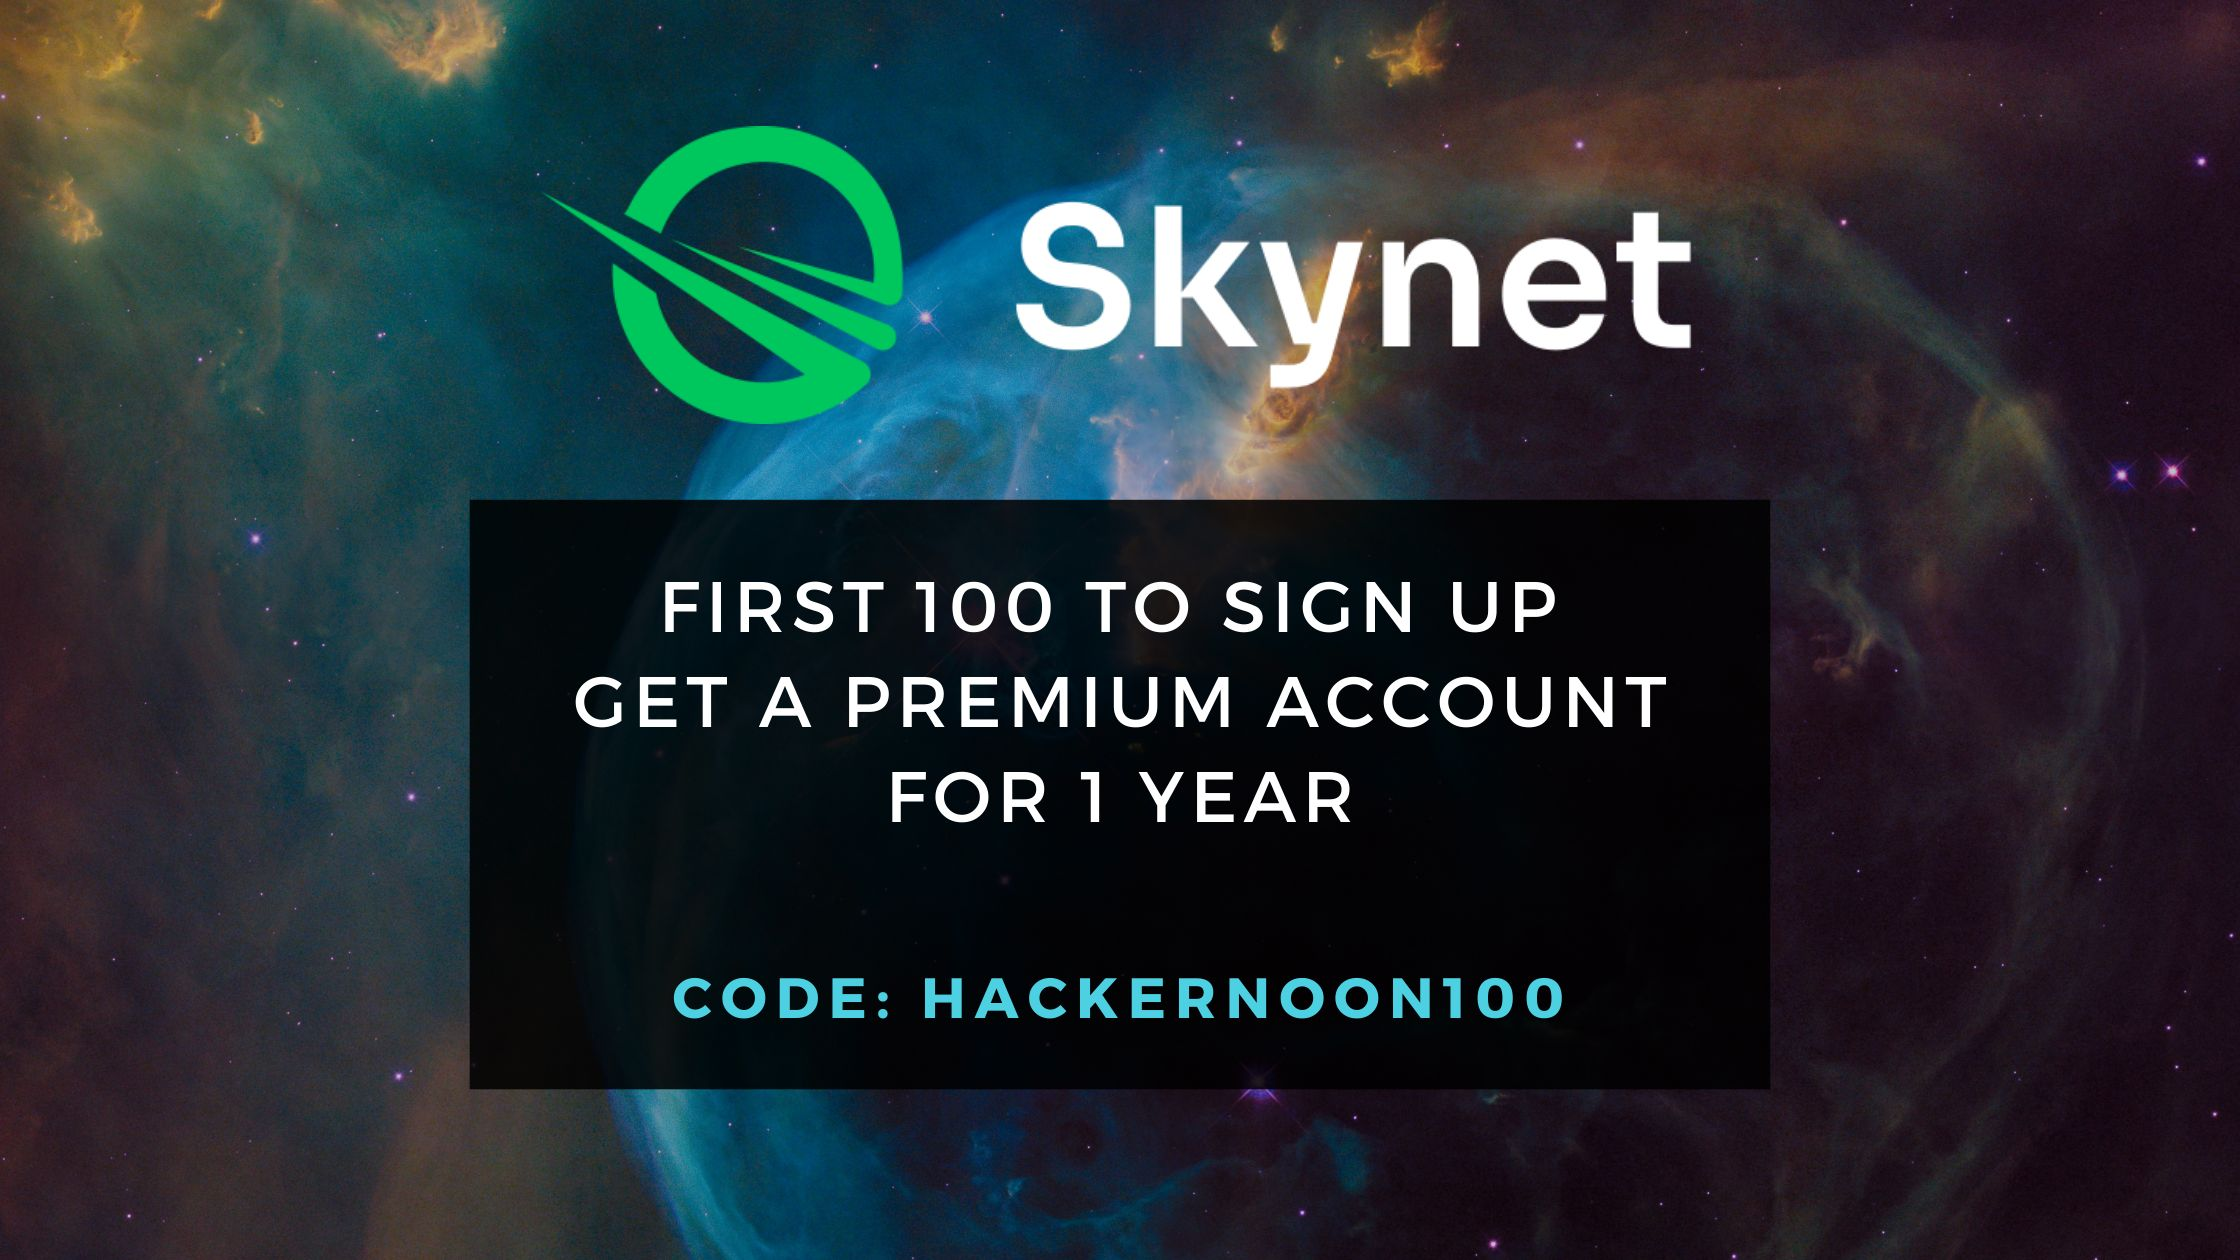 /web-monetization-in-crypto-the-skynet-way-441i335j feature image